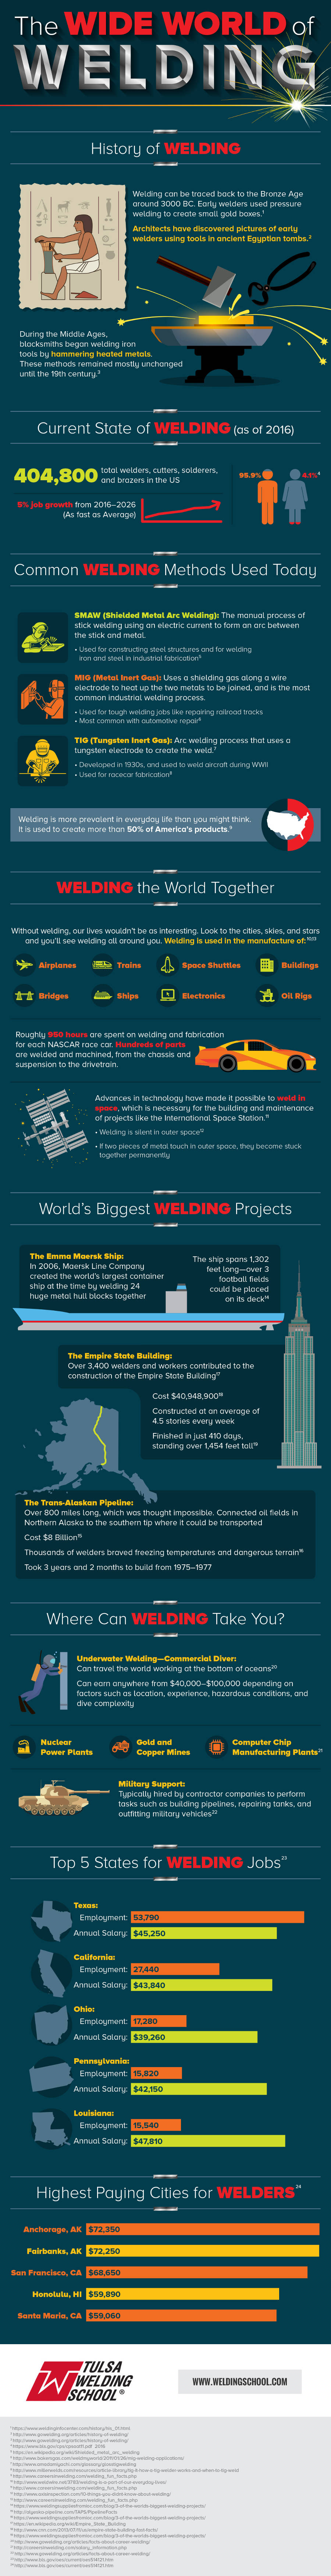 The Wide World of Welding Infographic